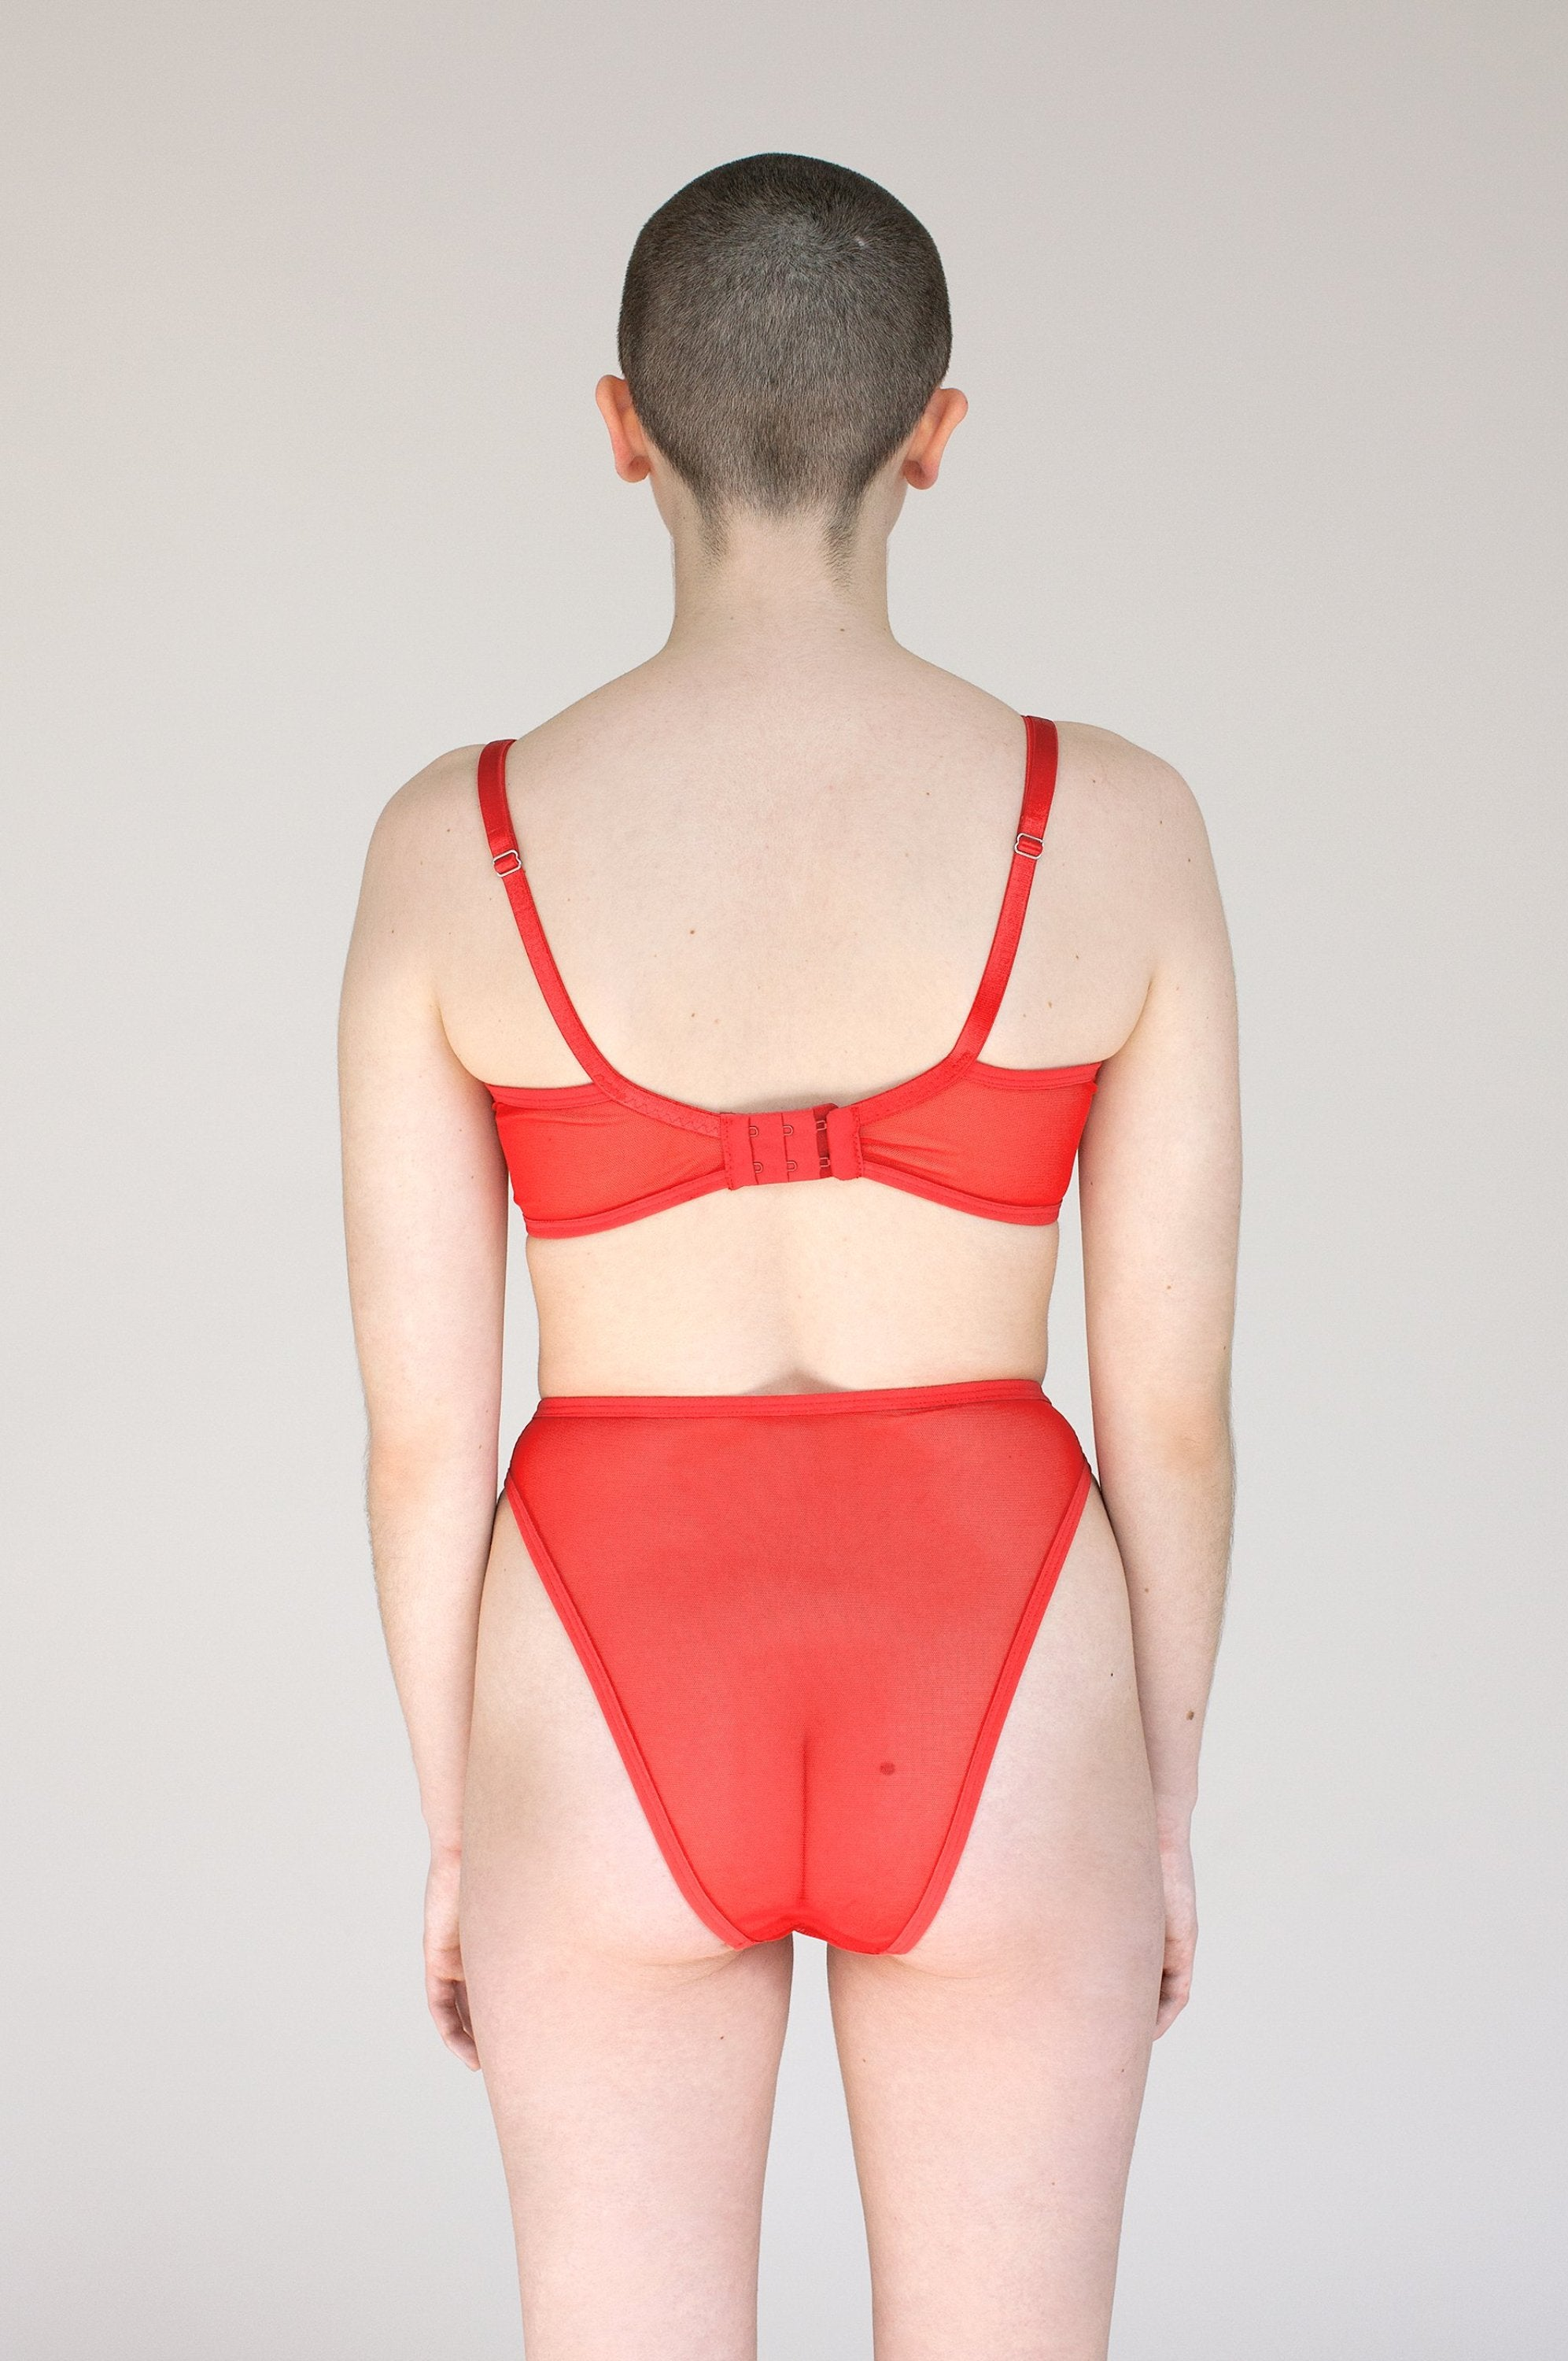 Brick Bra - Sheer Mesh Bra in Red - Lingerie Handmade in Toronto